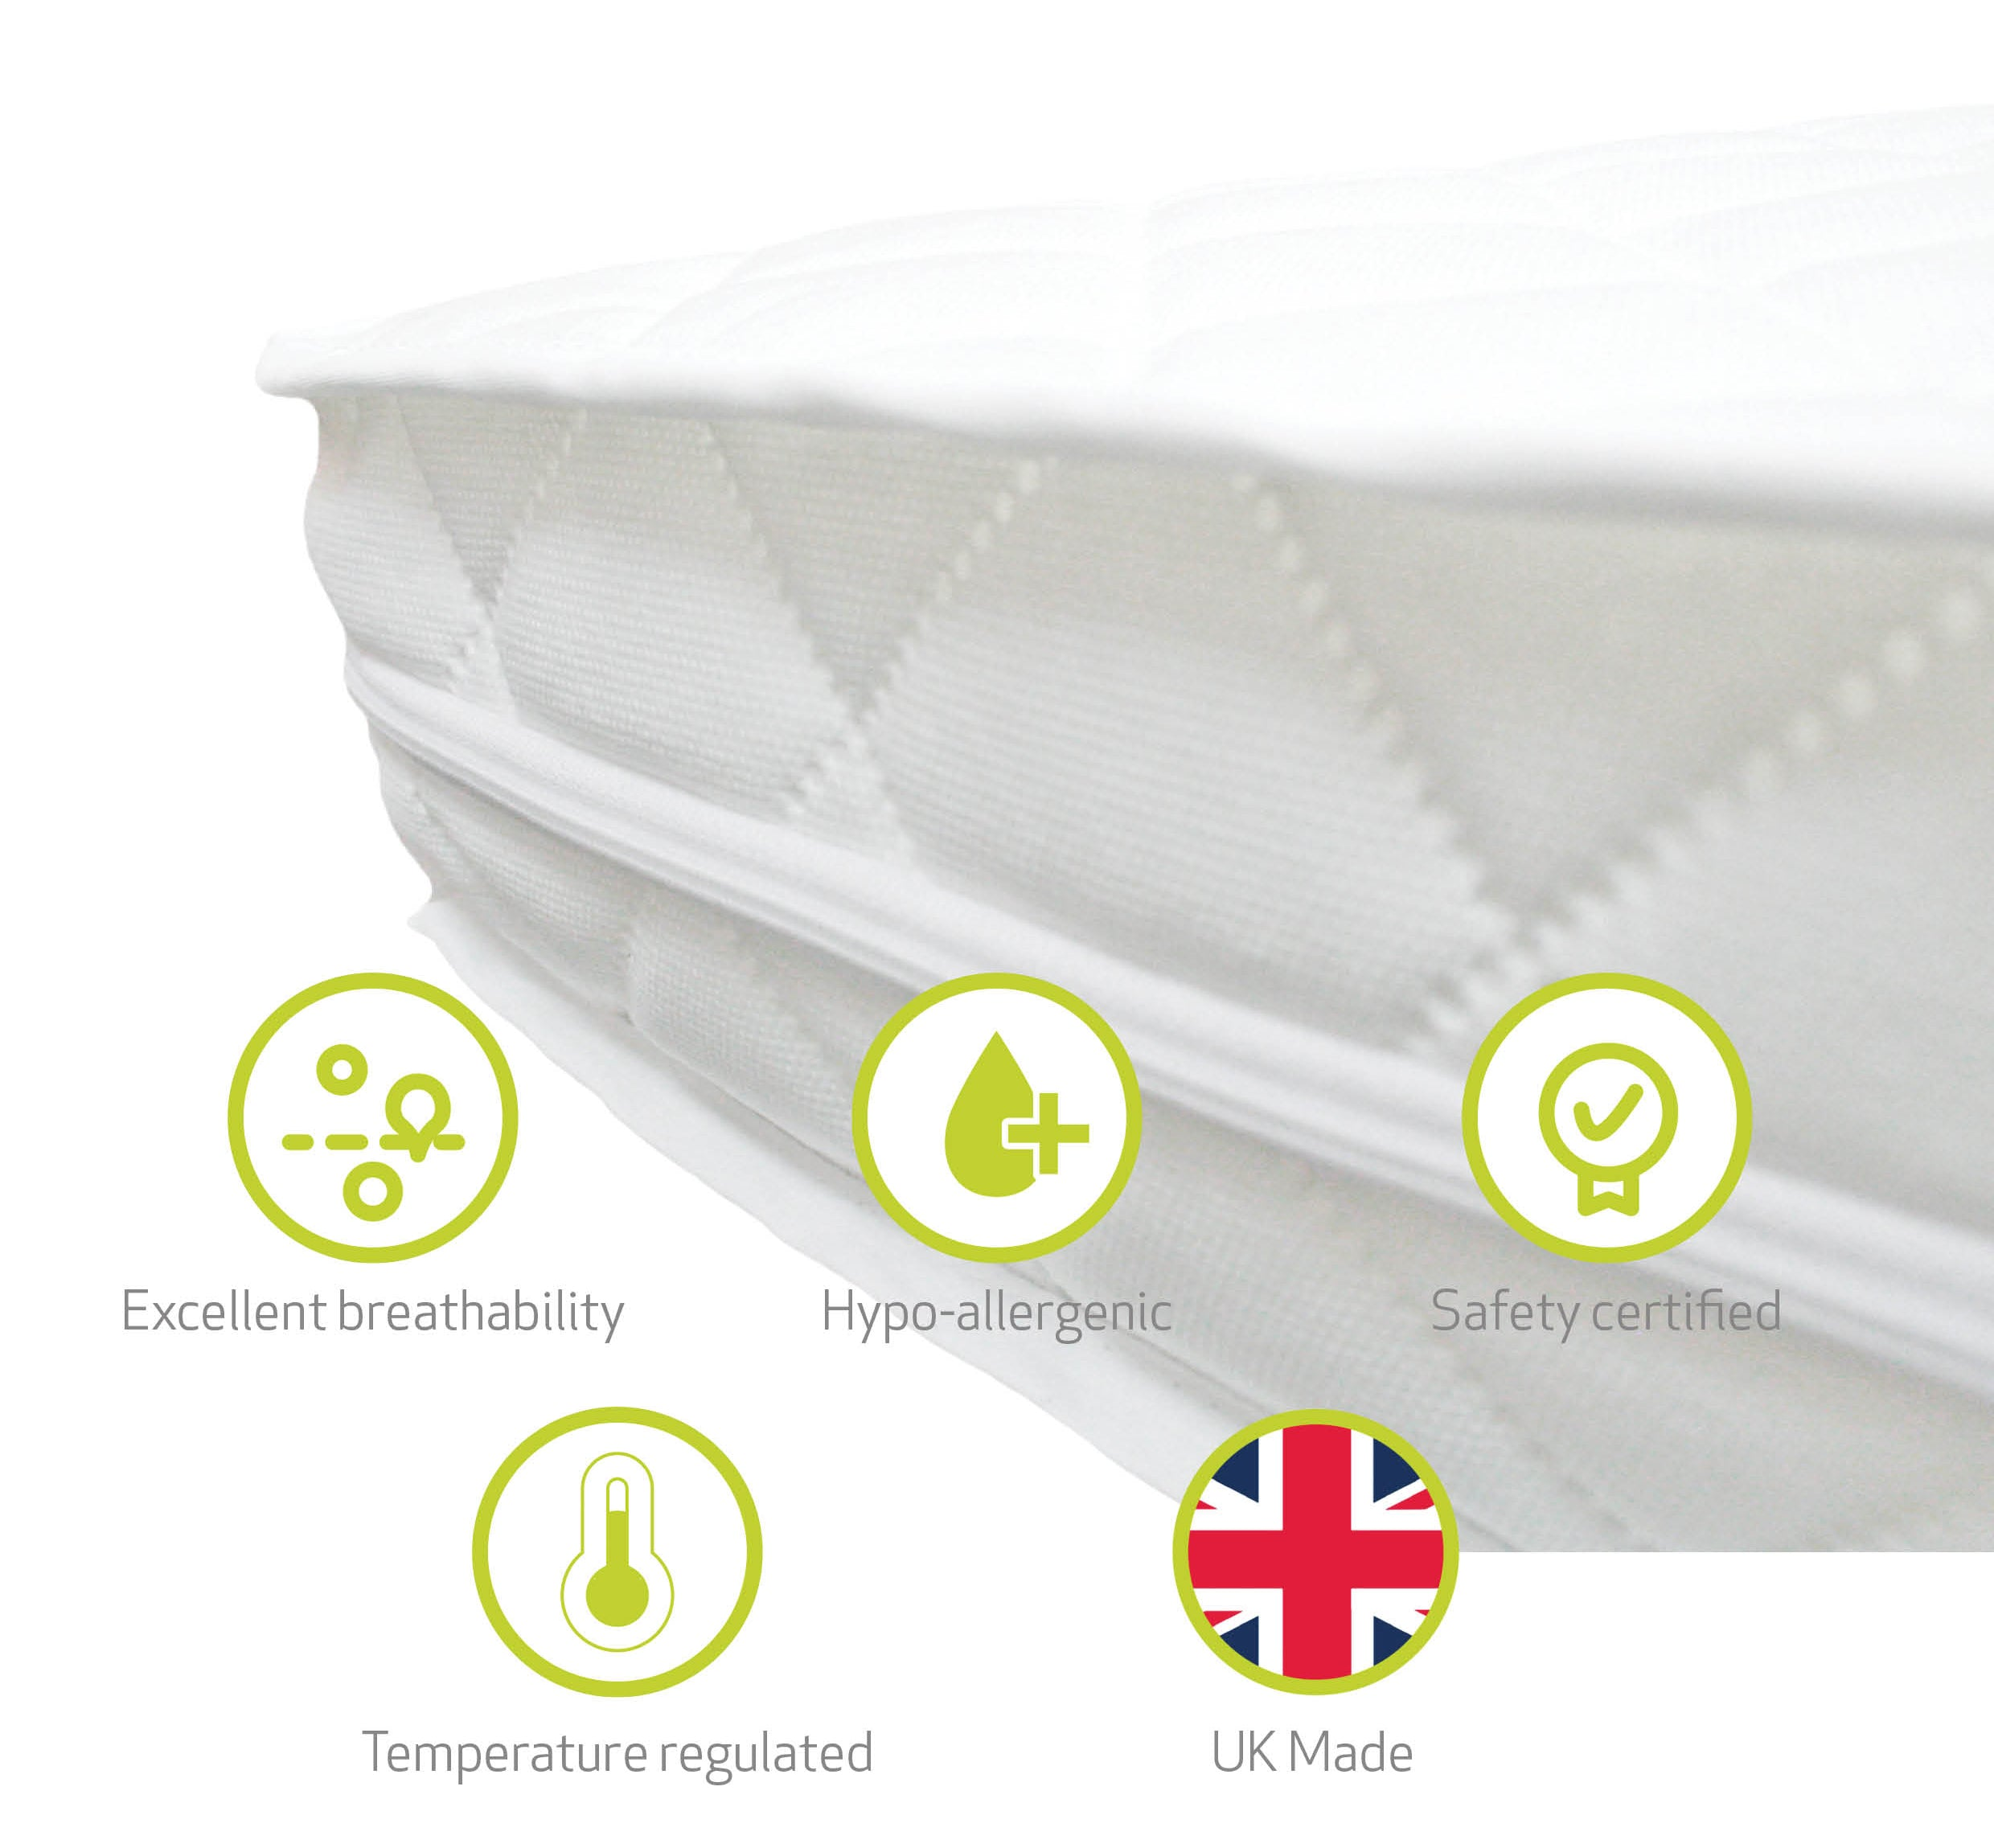 Comfort Cotbed Mattress